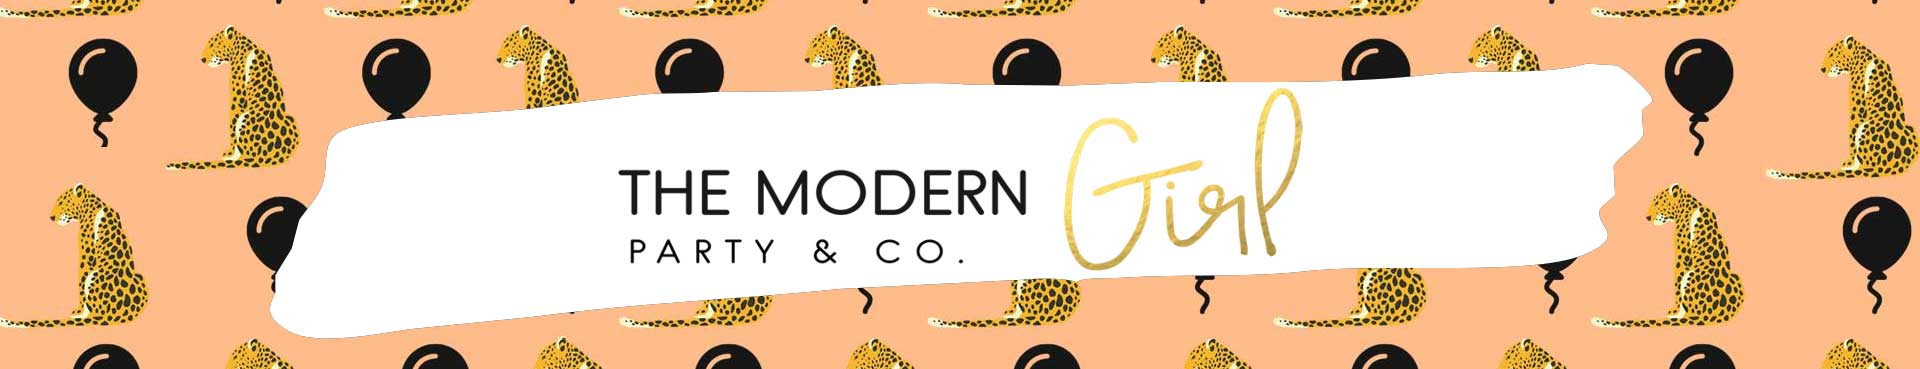 The Modern Girl Party Logo with Balloons and Leopards background